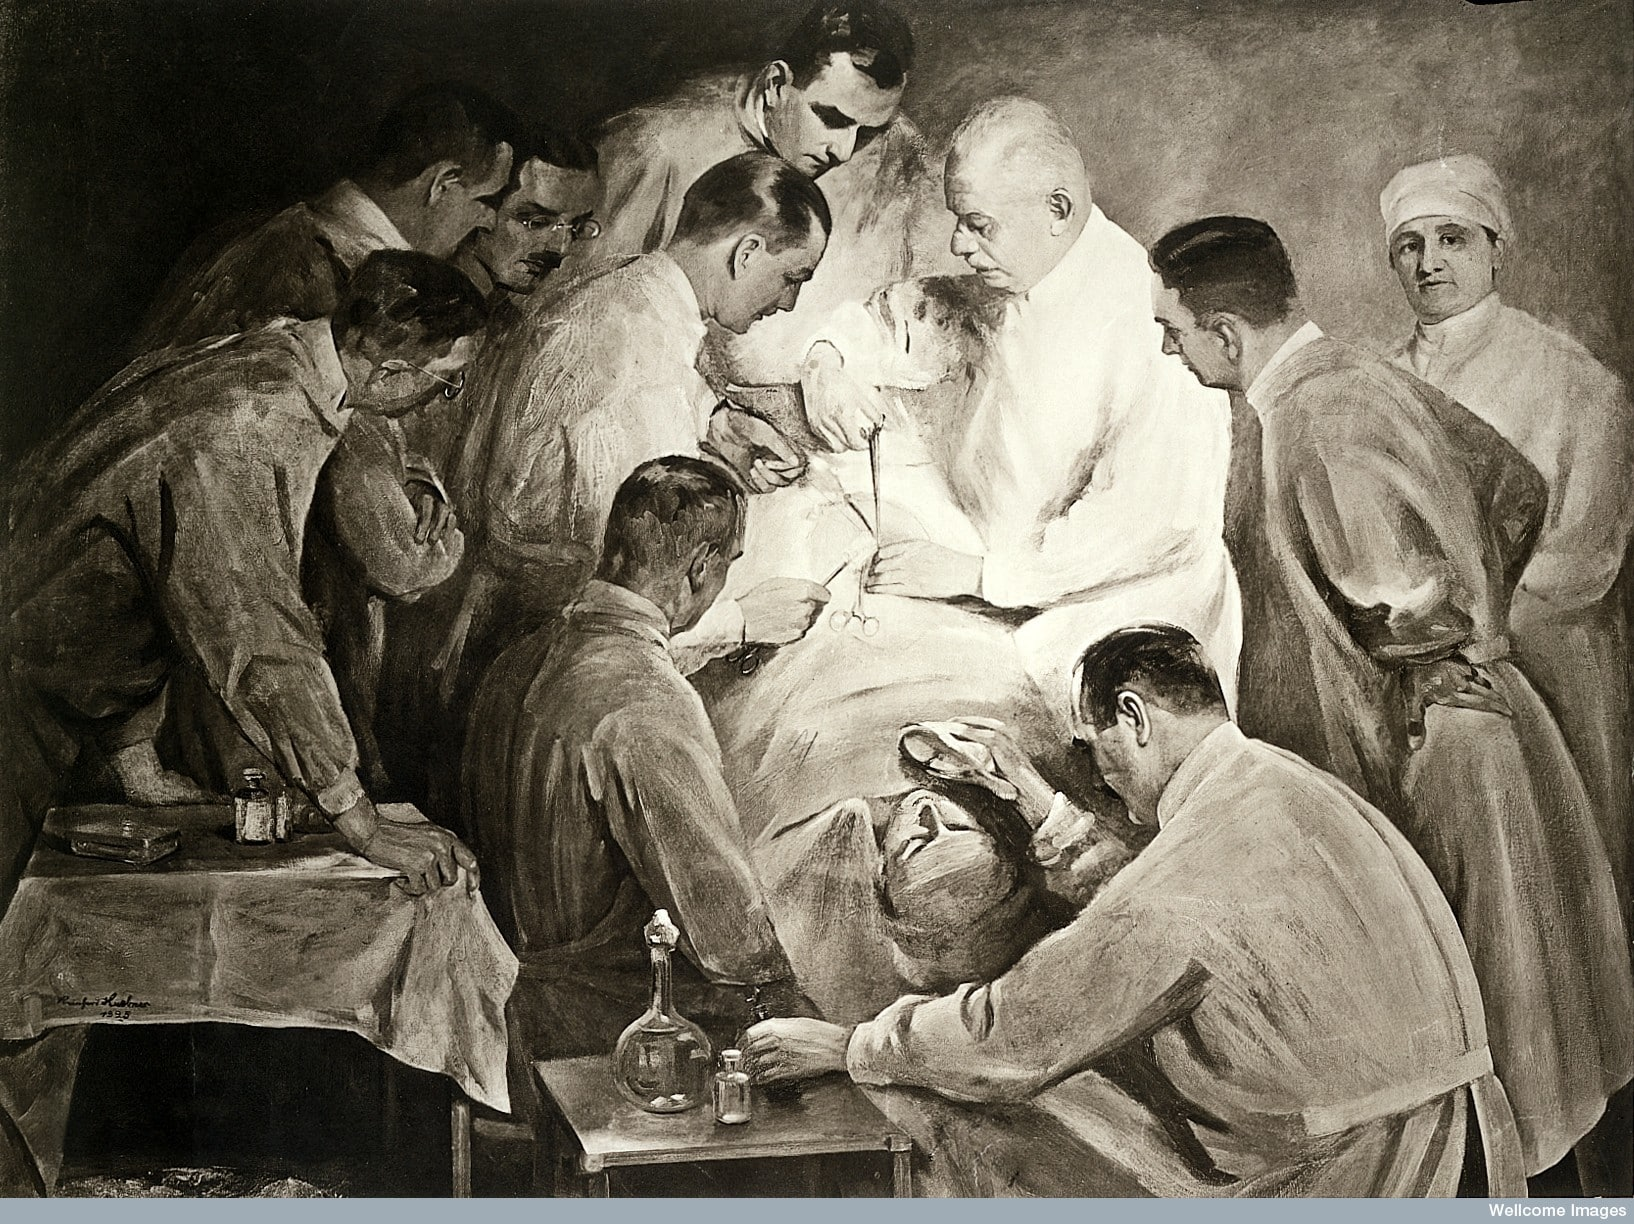 Professor Ernst Bumm operating on a male patient, other doctors monitor the patient's condition. Photogravure, 1920.